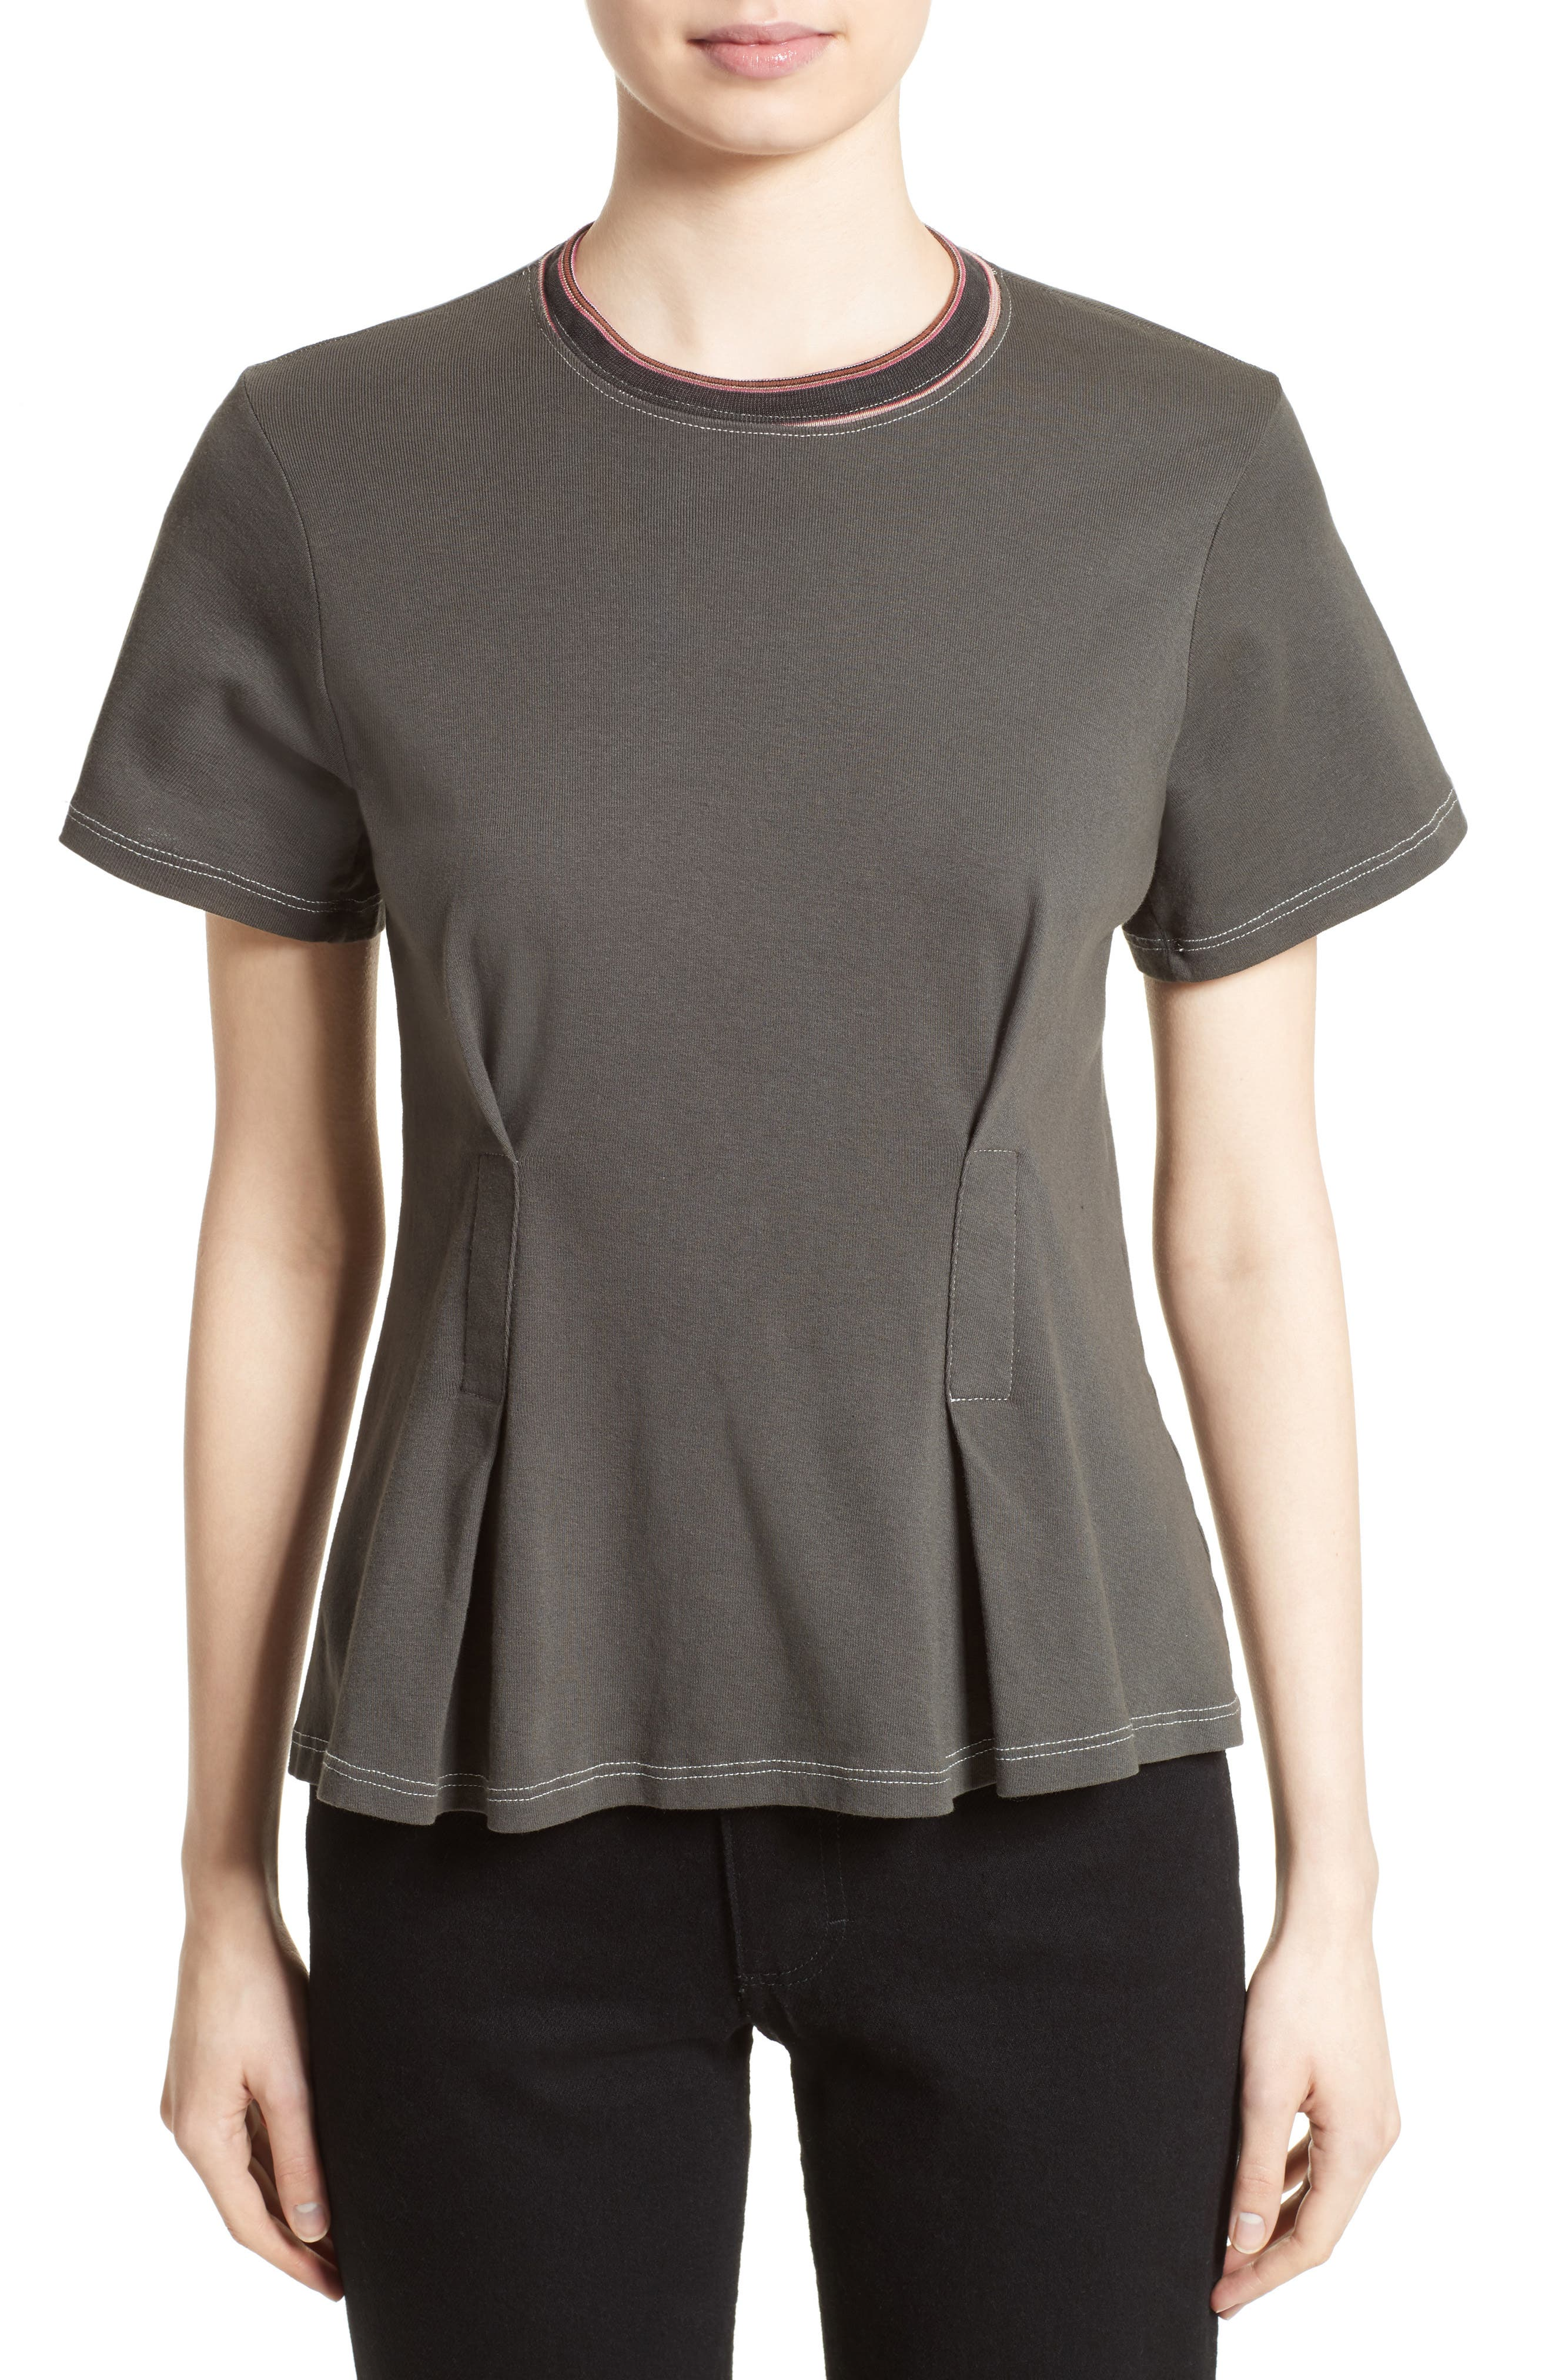 Top Stitch Tee,                             Main thumbnail 1, color,                             Off Black